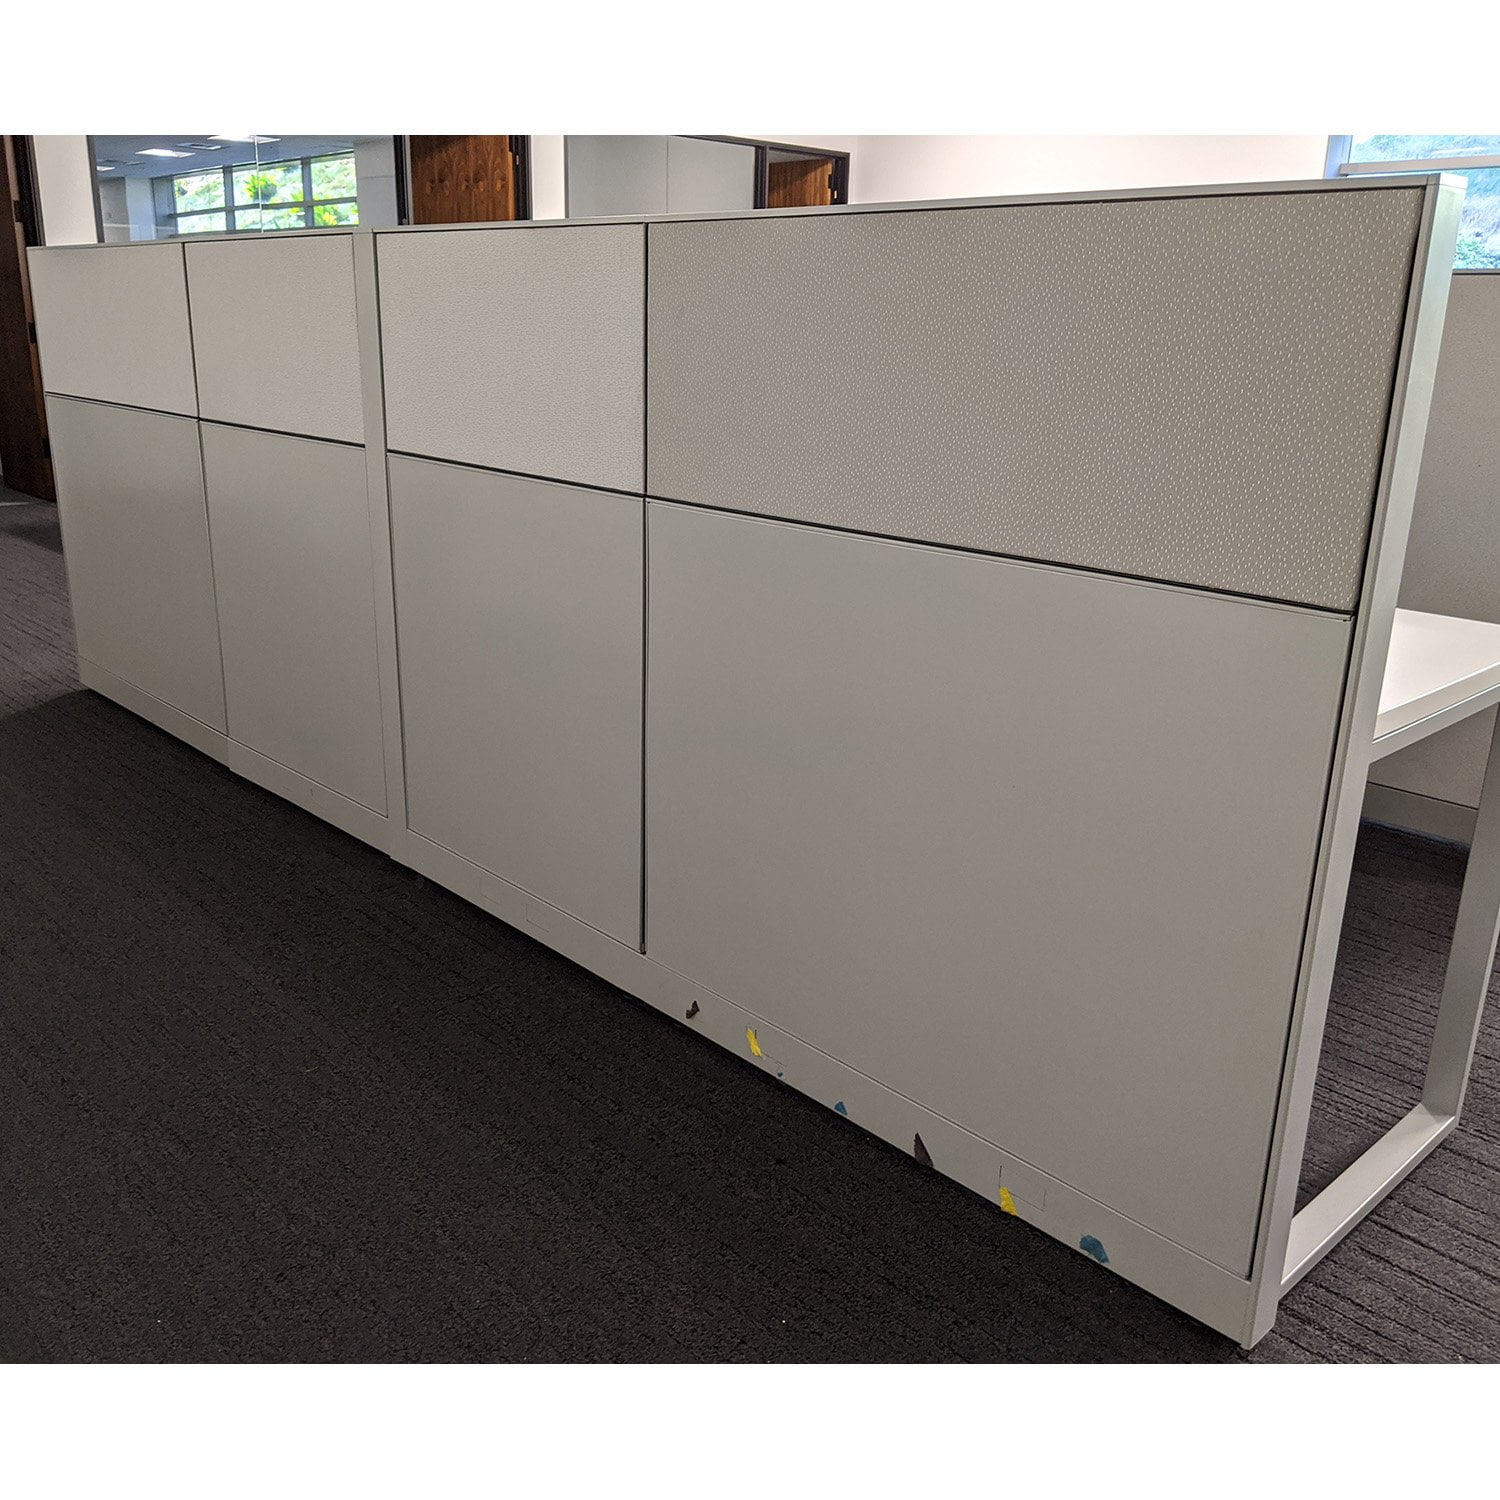 6x6 Premise Used Work Stations By Haworth, Sold in Pods